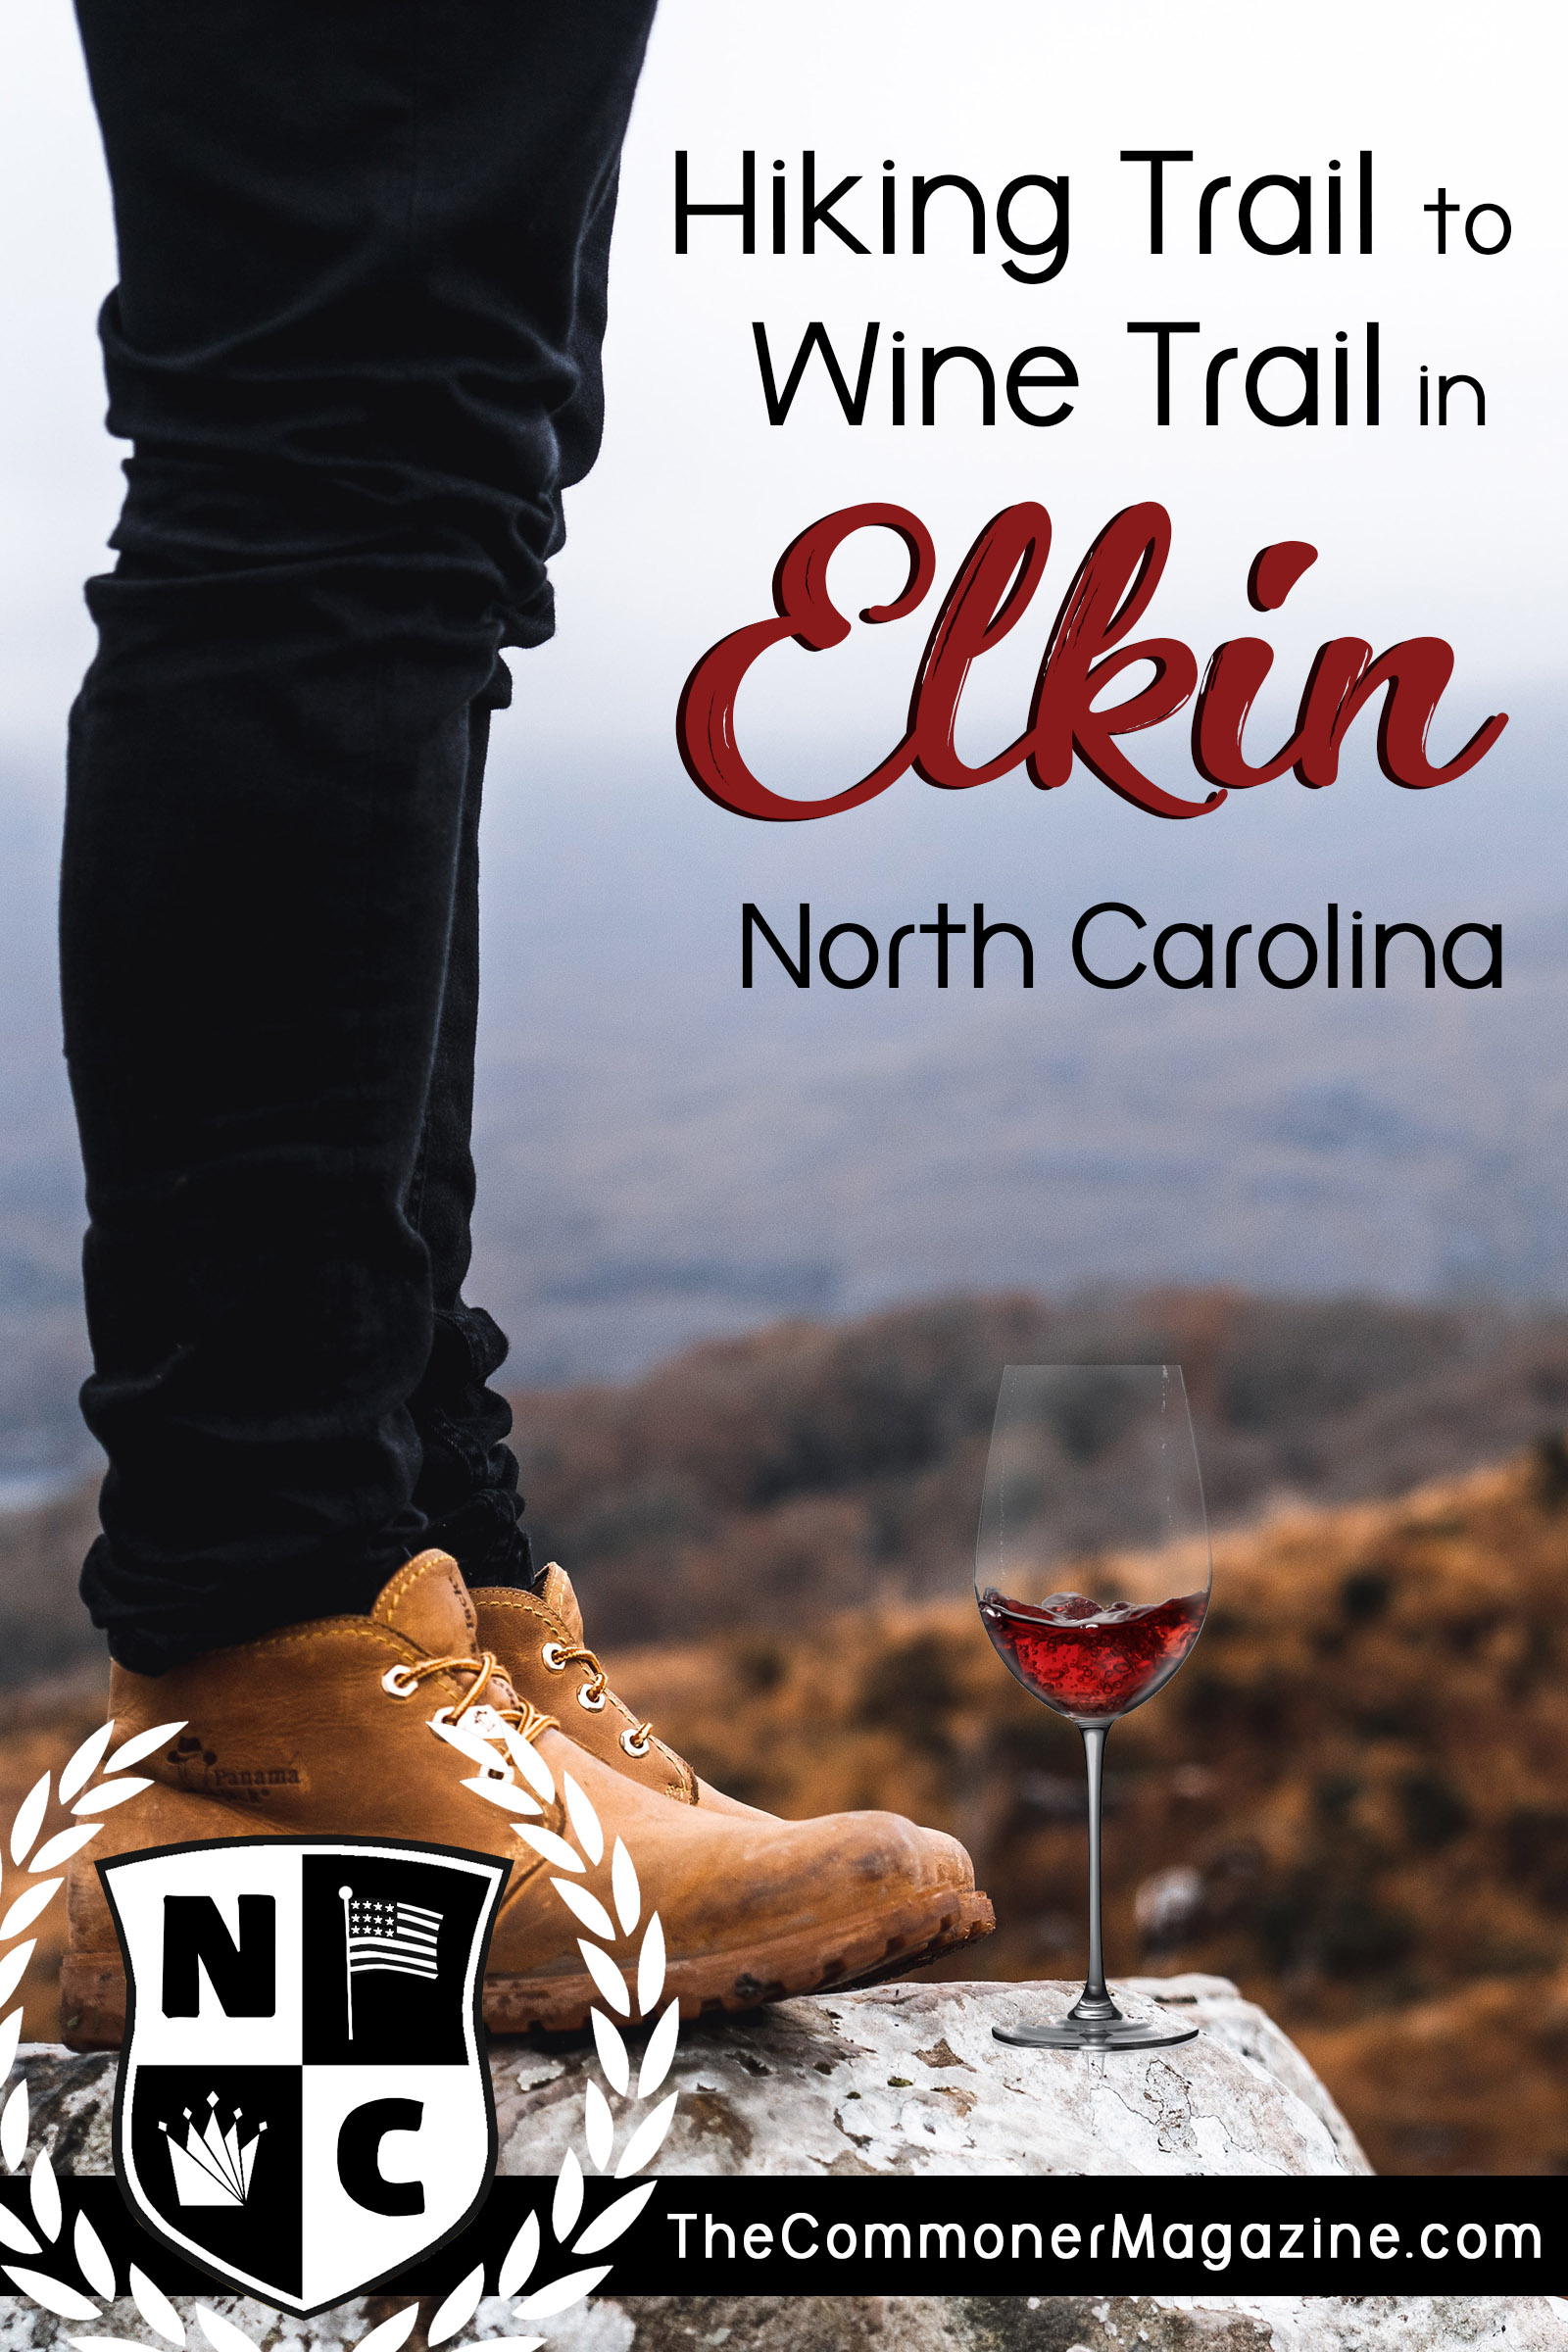 Go from the hiking trail to the wine trail in the Yadkin Valley in Western North Carolina. There's plenty of outdoor activities available no matter the season. If you prefer the indoors there's plenty of fine shopping and dining to be had in the historic town of Elkin. The Commoner Magazine, full of USA travel tips from local experts. #familytravel #USAtravel #NorthCarolina #Thingstodoinnorthcarolina #Elkin #ElkinNC #YadkinValley #Winetrail #NChiking #mountains